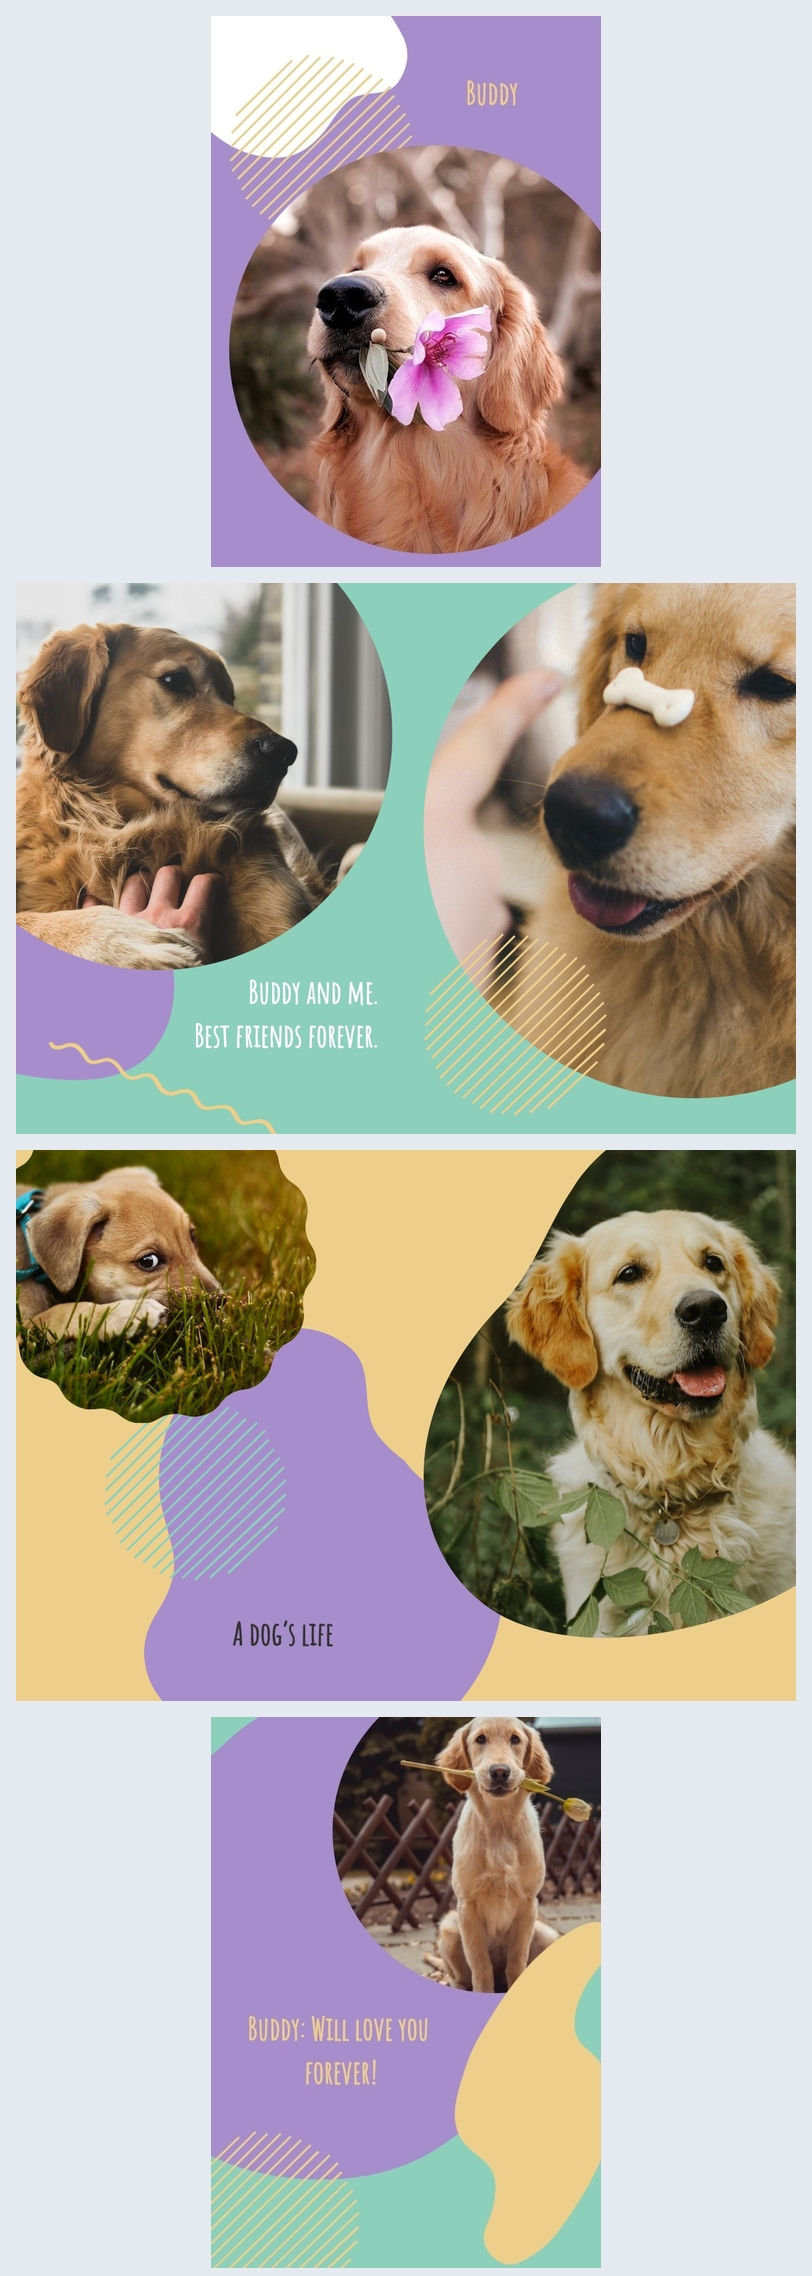 Dog Memory Photo Book